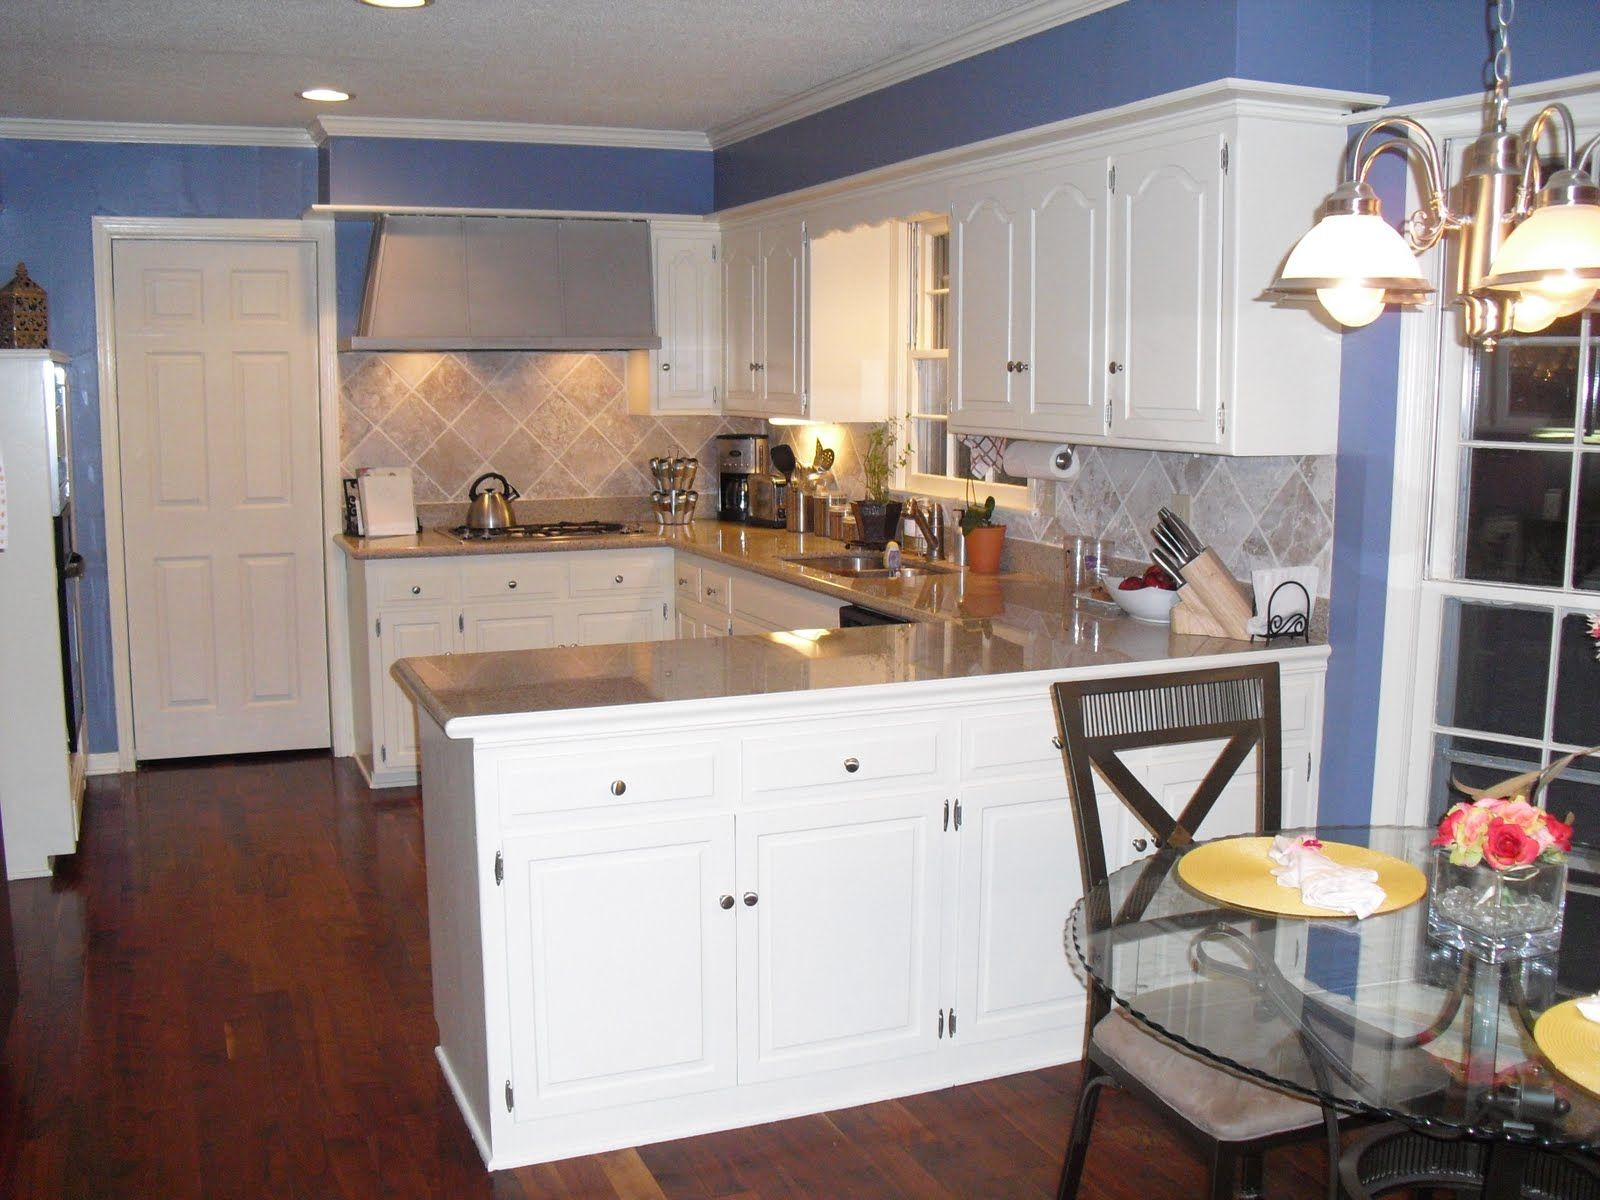 Kitchen Remodel With White Cabinets and Blue Walls | Kitchen colors ...